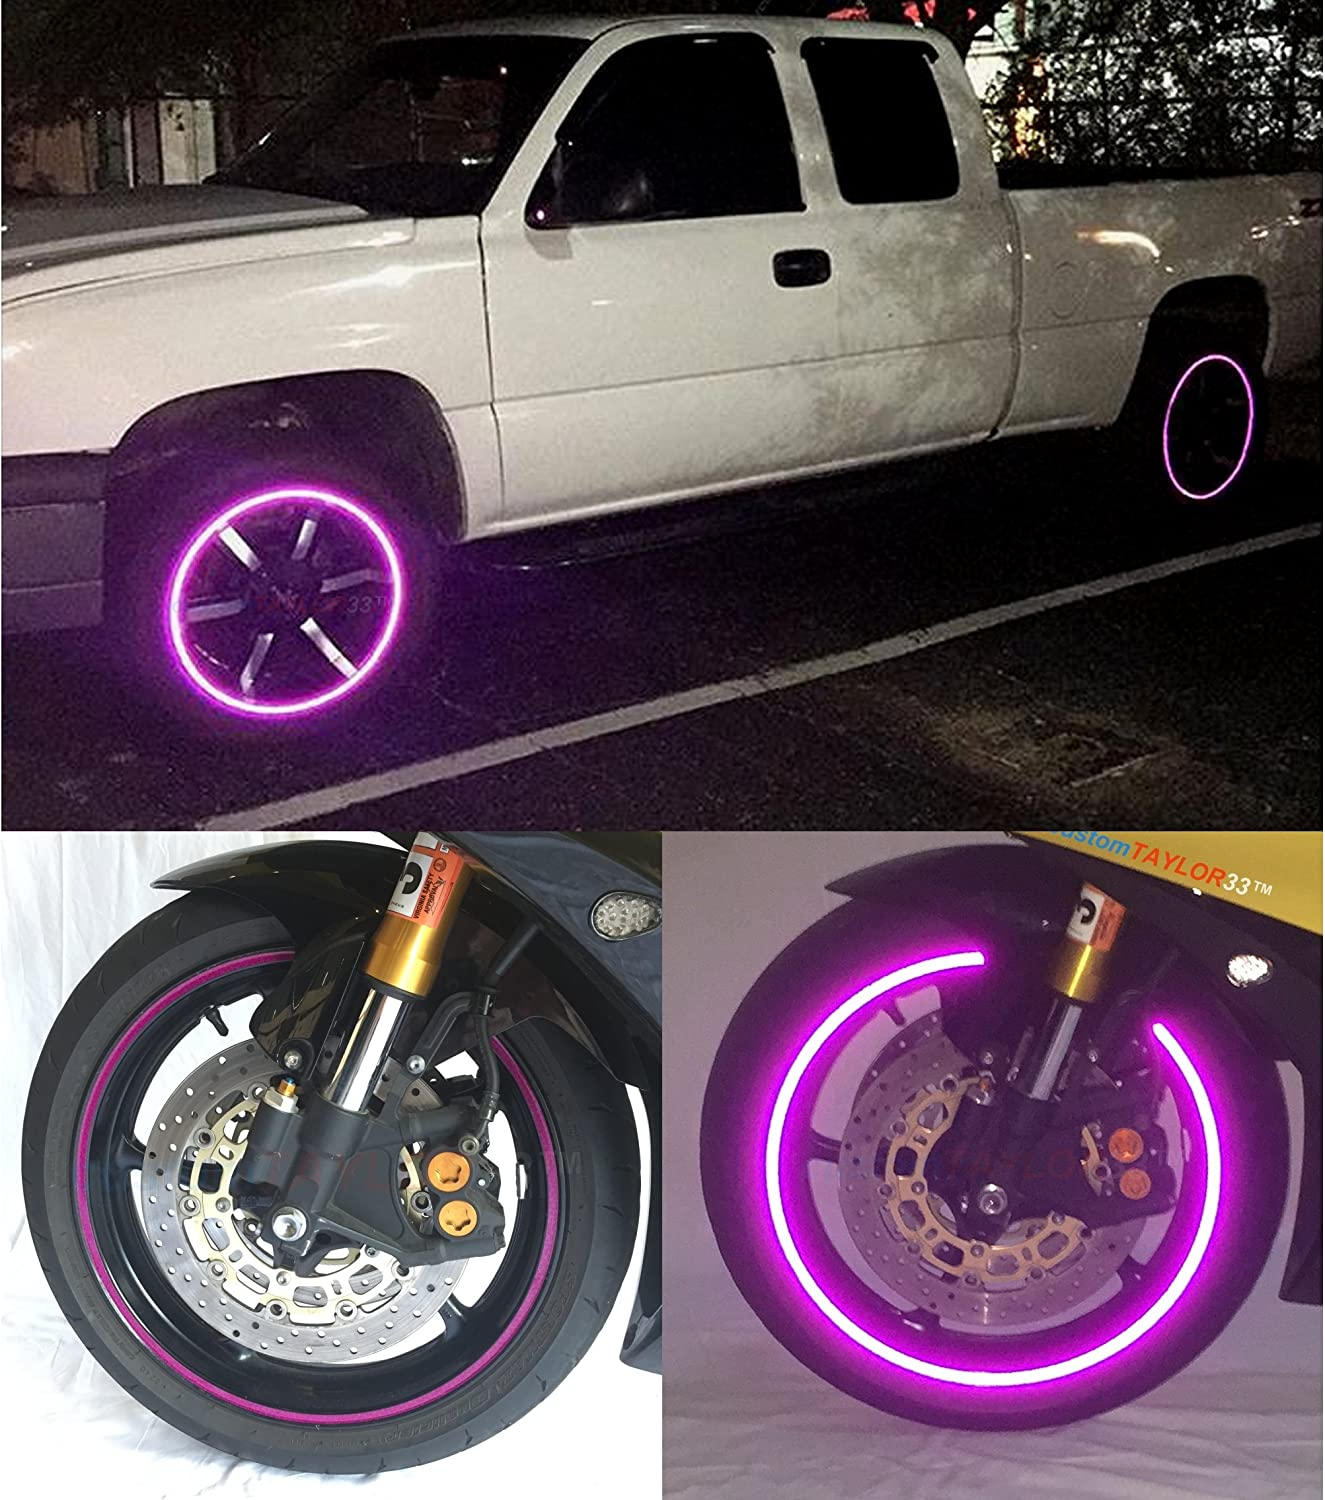 customTAYLOR33 New Special Edition Purple High Intensity Grade Reflective Copyrighted Safety Rim Tapes Rim Size 19